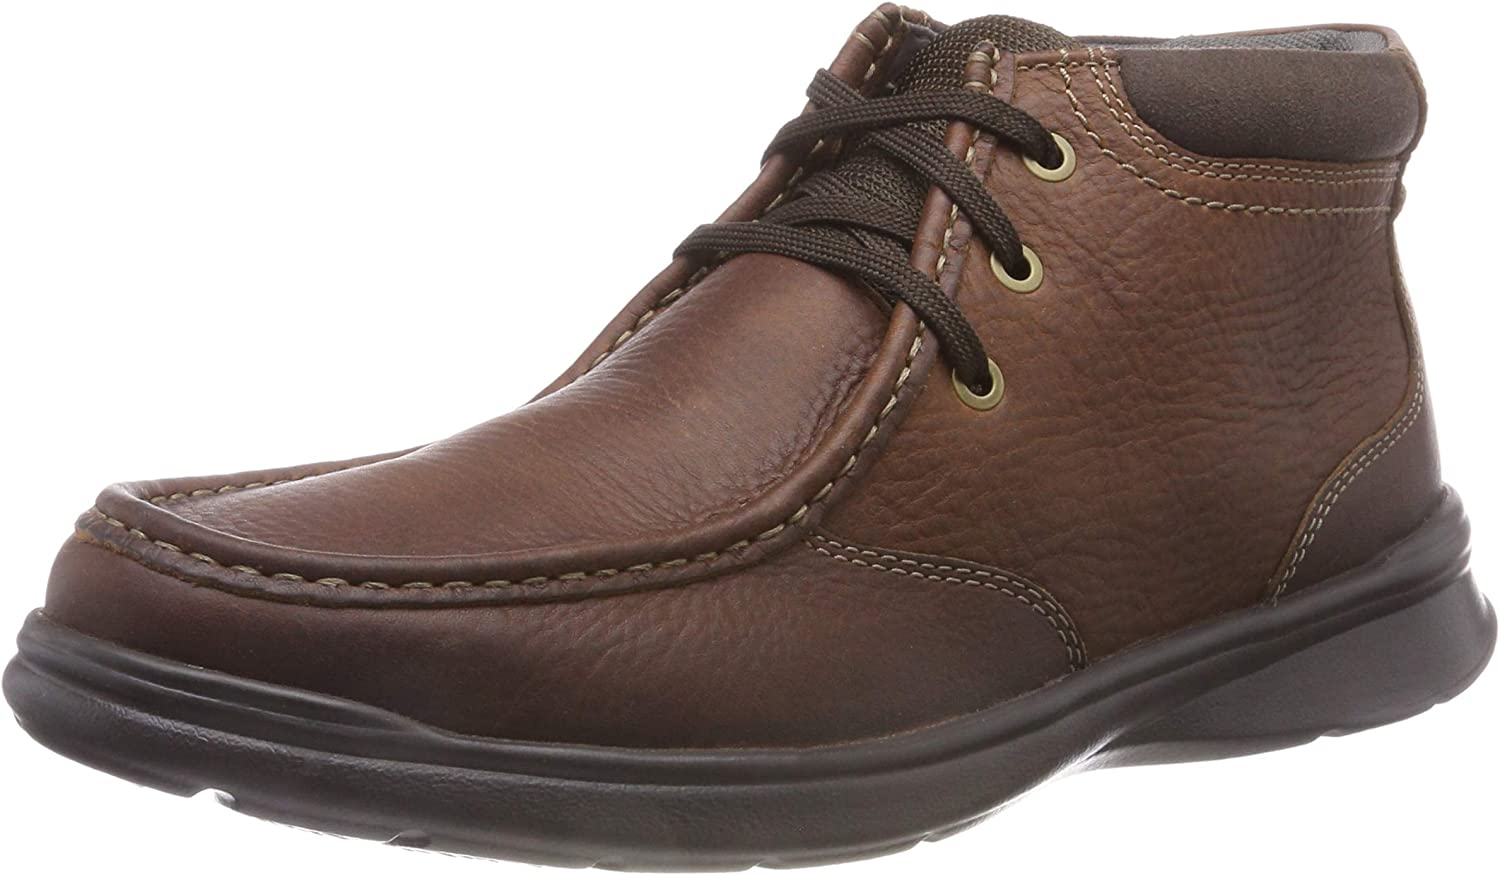 Clarks Men's Komuter Spark Classic Boots, Brown (Tobacco Leather) 9.5 UK